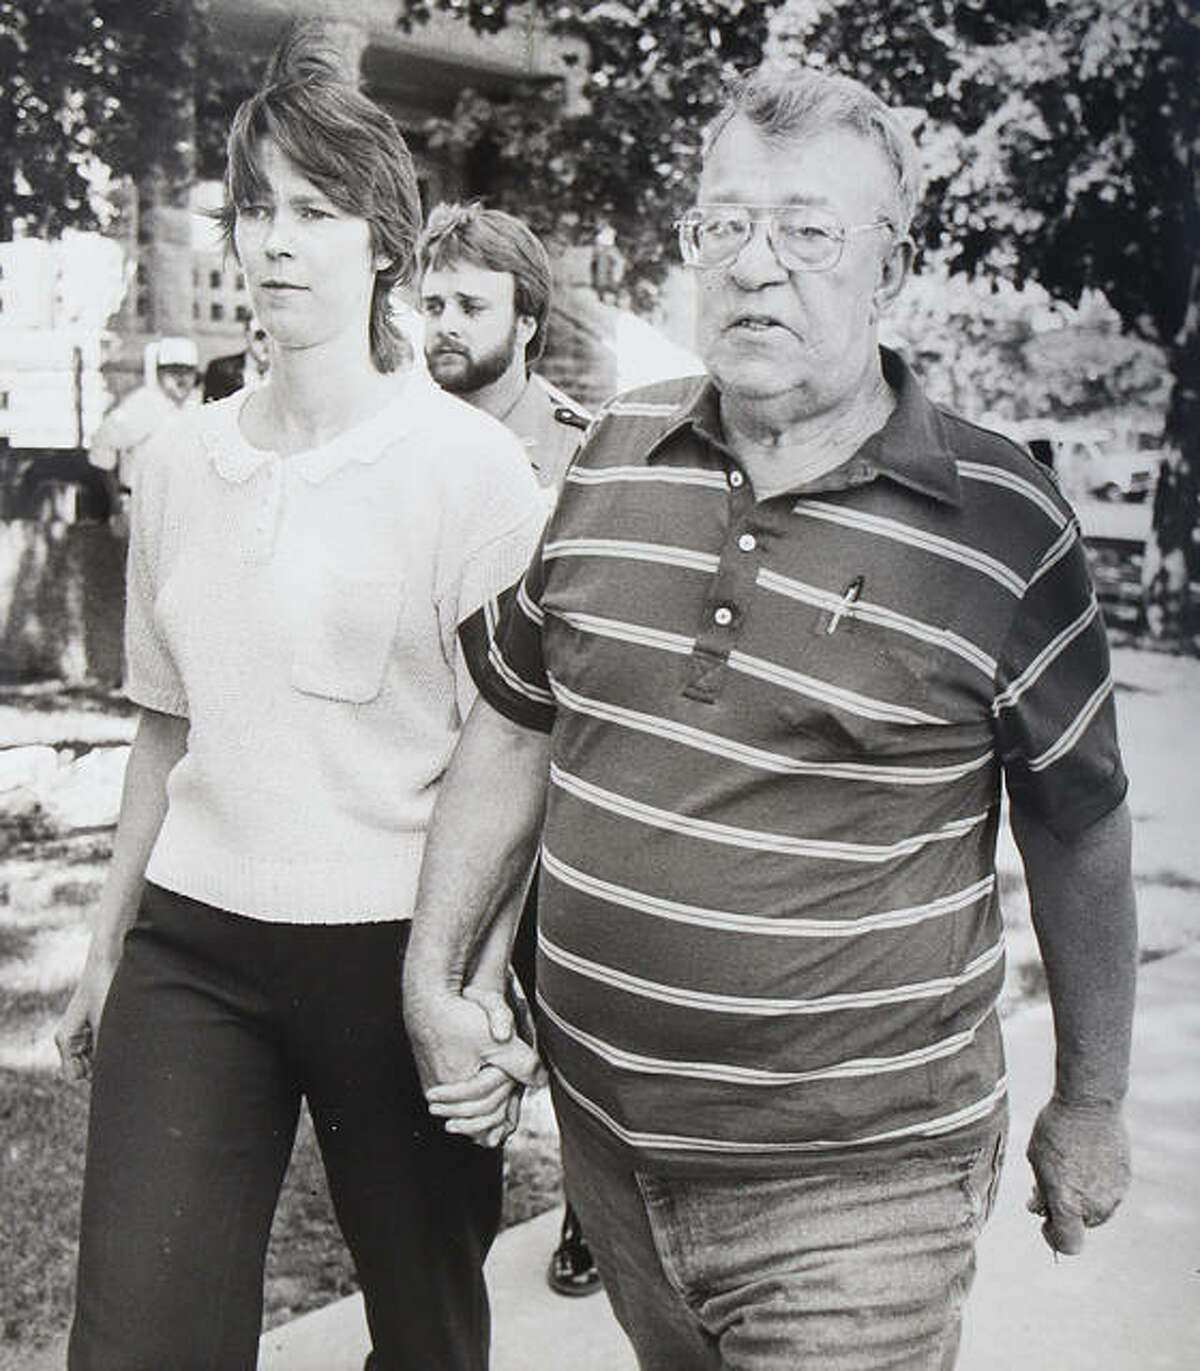 Paula Sims holds the hand of her father, Orville Blew, as they leave the Jersey County Courthouse after posting bond in May of 1989 on four felony charges related to the death of her first daughter, Loralei Marie Sims, who died in 1986.